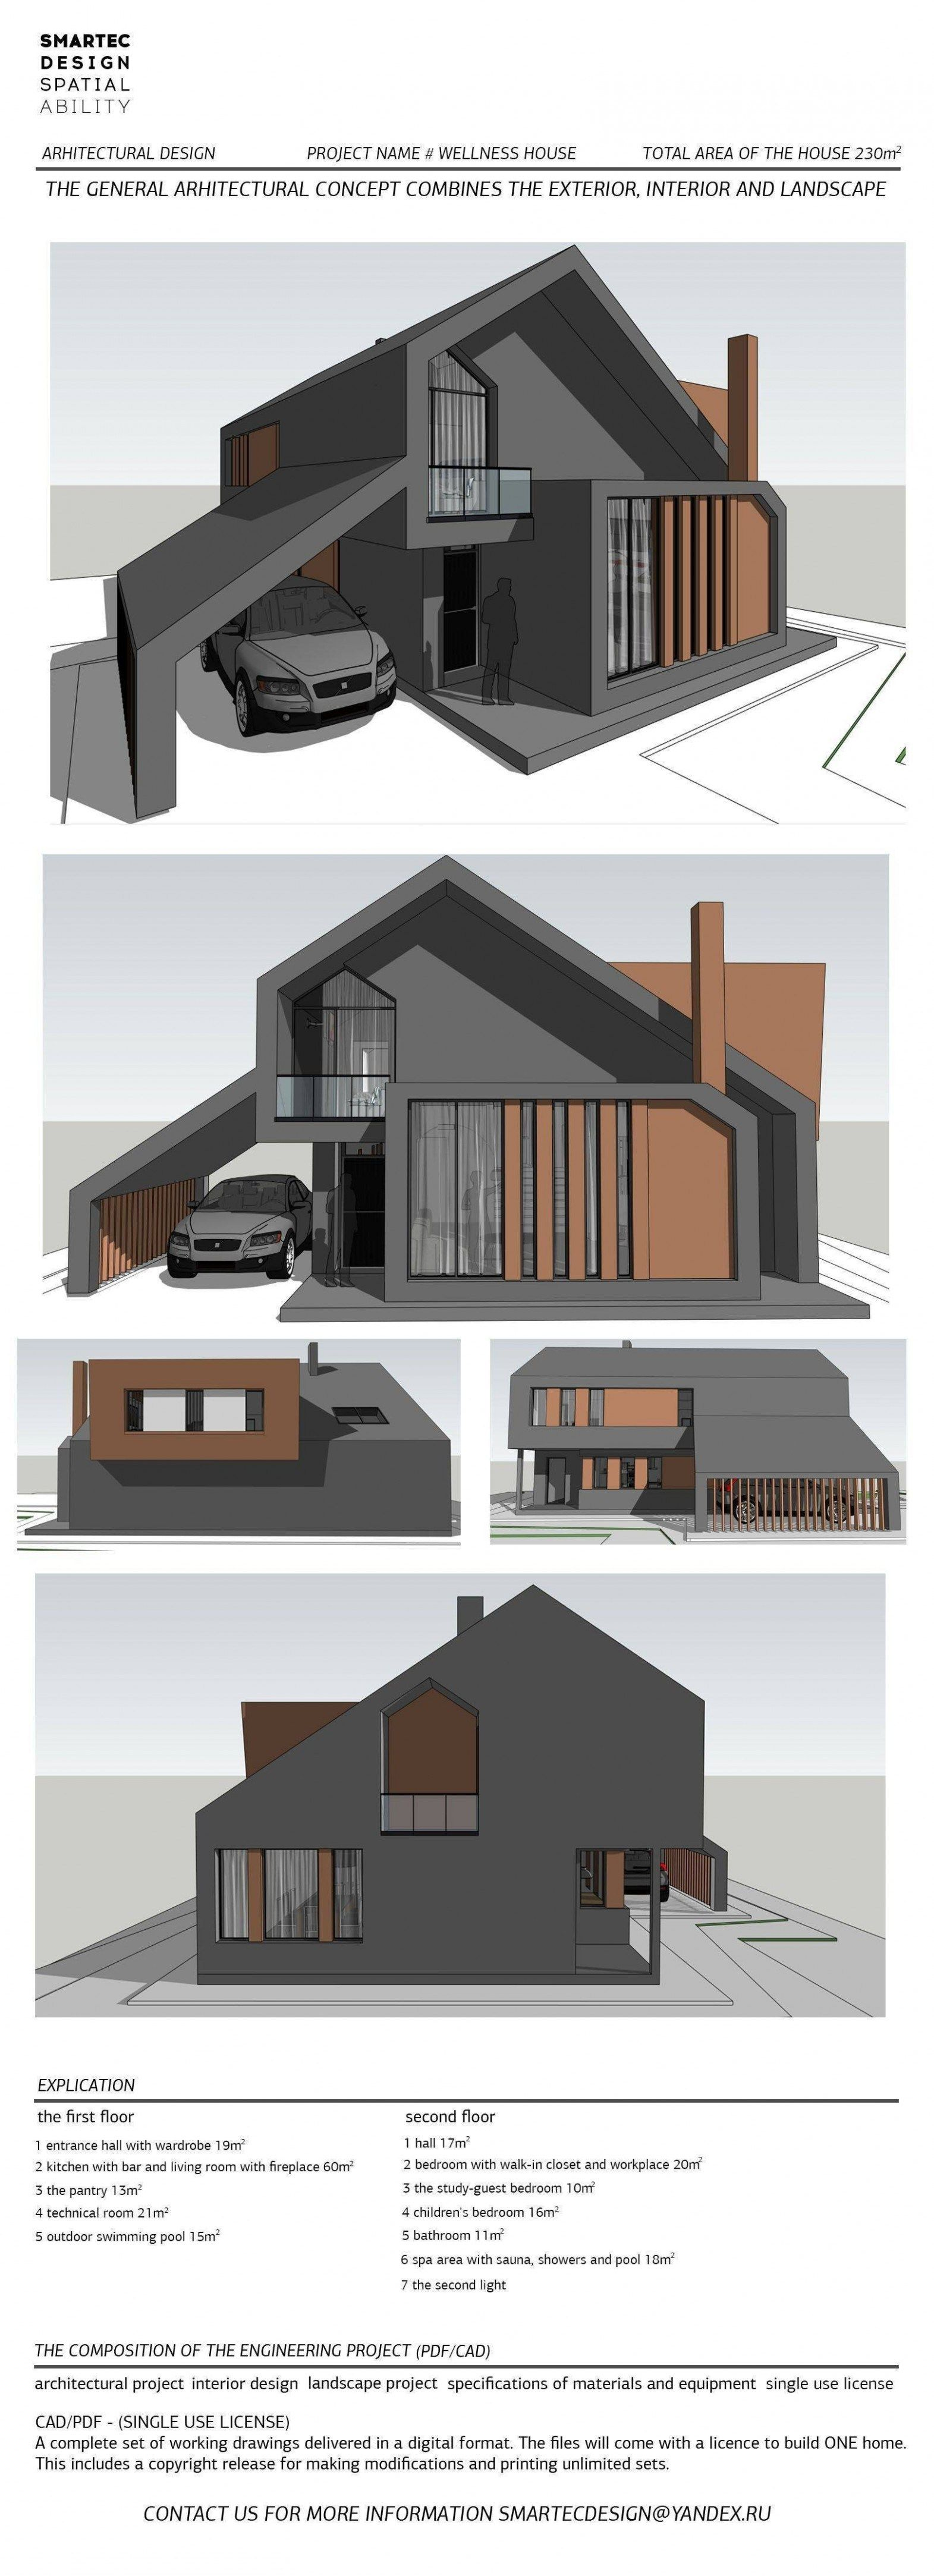 Home facade design house designs exterior with plans inspirational metal wall art also pin by on housedesgnine pinterest rh in